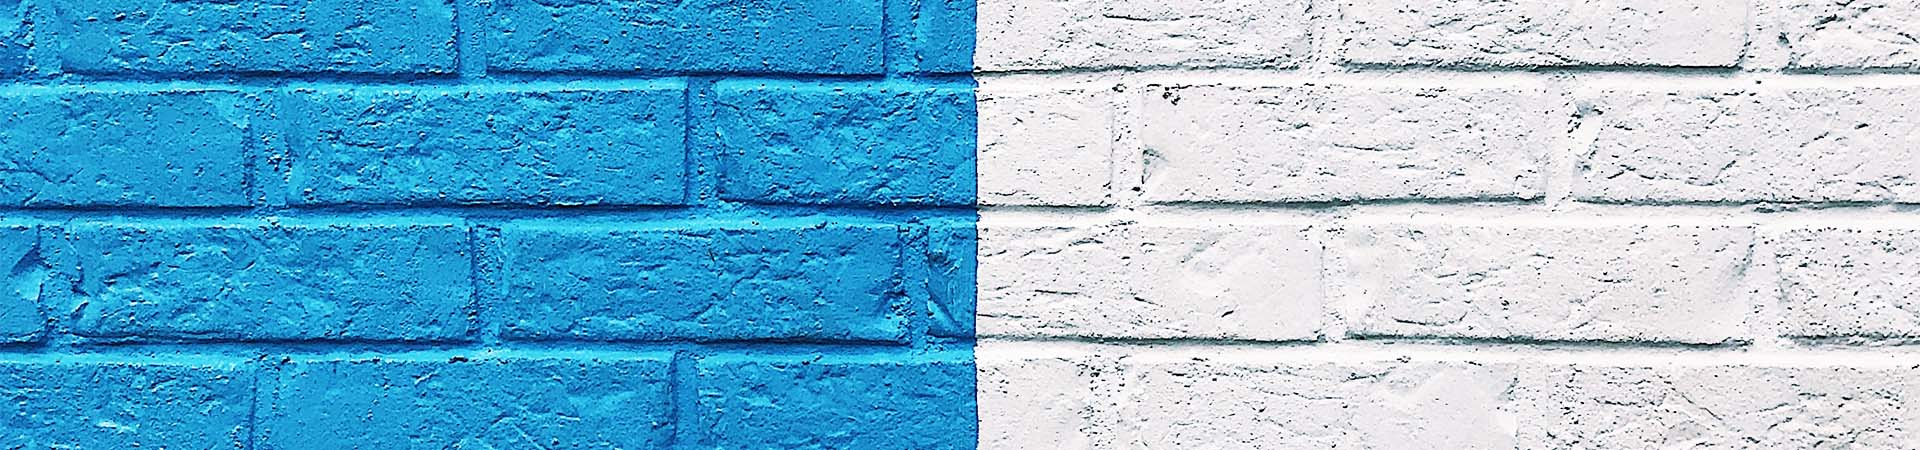 Blue and white painted bricks